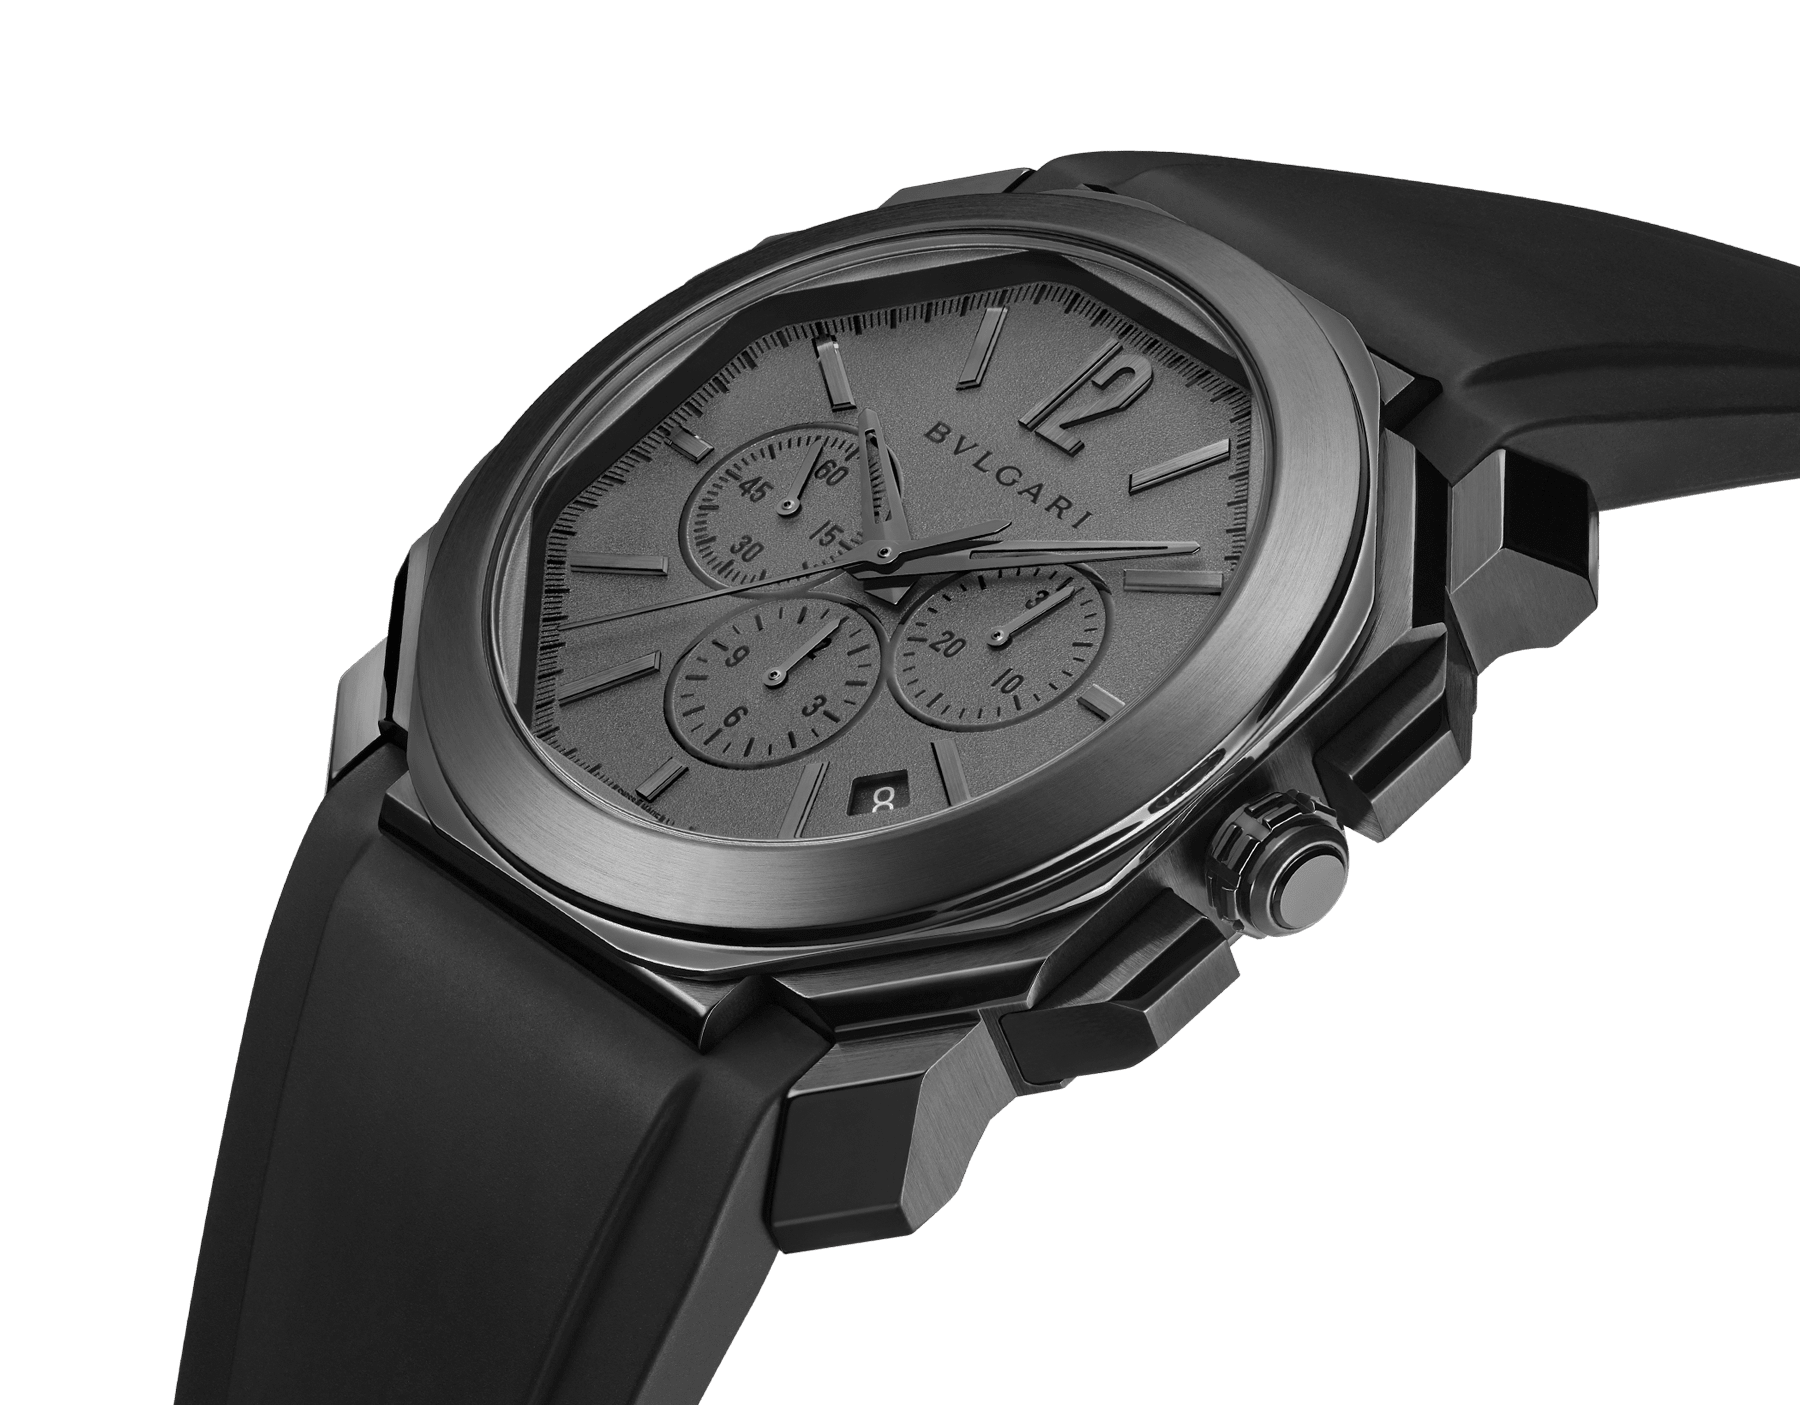 Octo L'Originale watch with mechanical manufacture movement, integrated high-frequency chronograph (5Hz), column wheel mechanism, silicon escapement, automatic winding and date, stainless steel case treated with black Diamond Like Carbon, grey dial and black rubber bracelet 103027 image 2